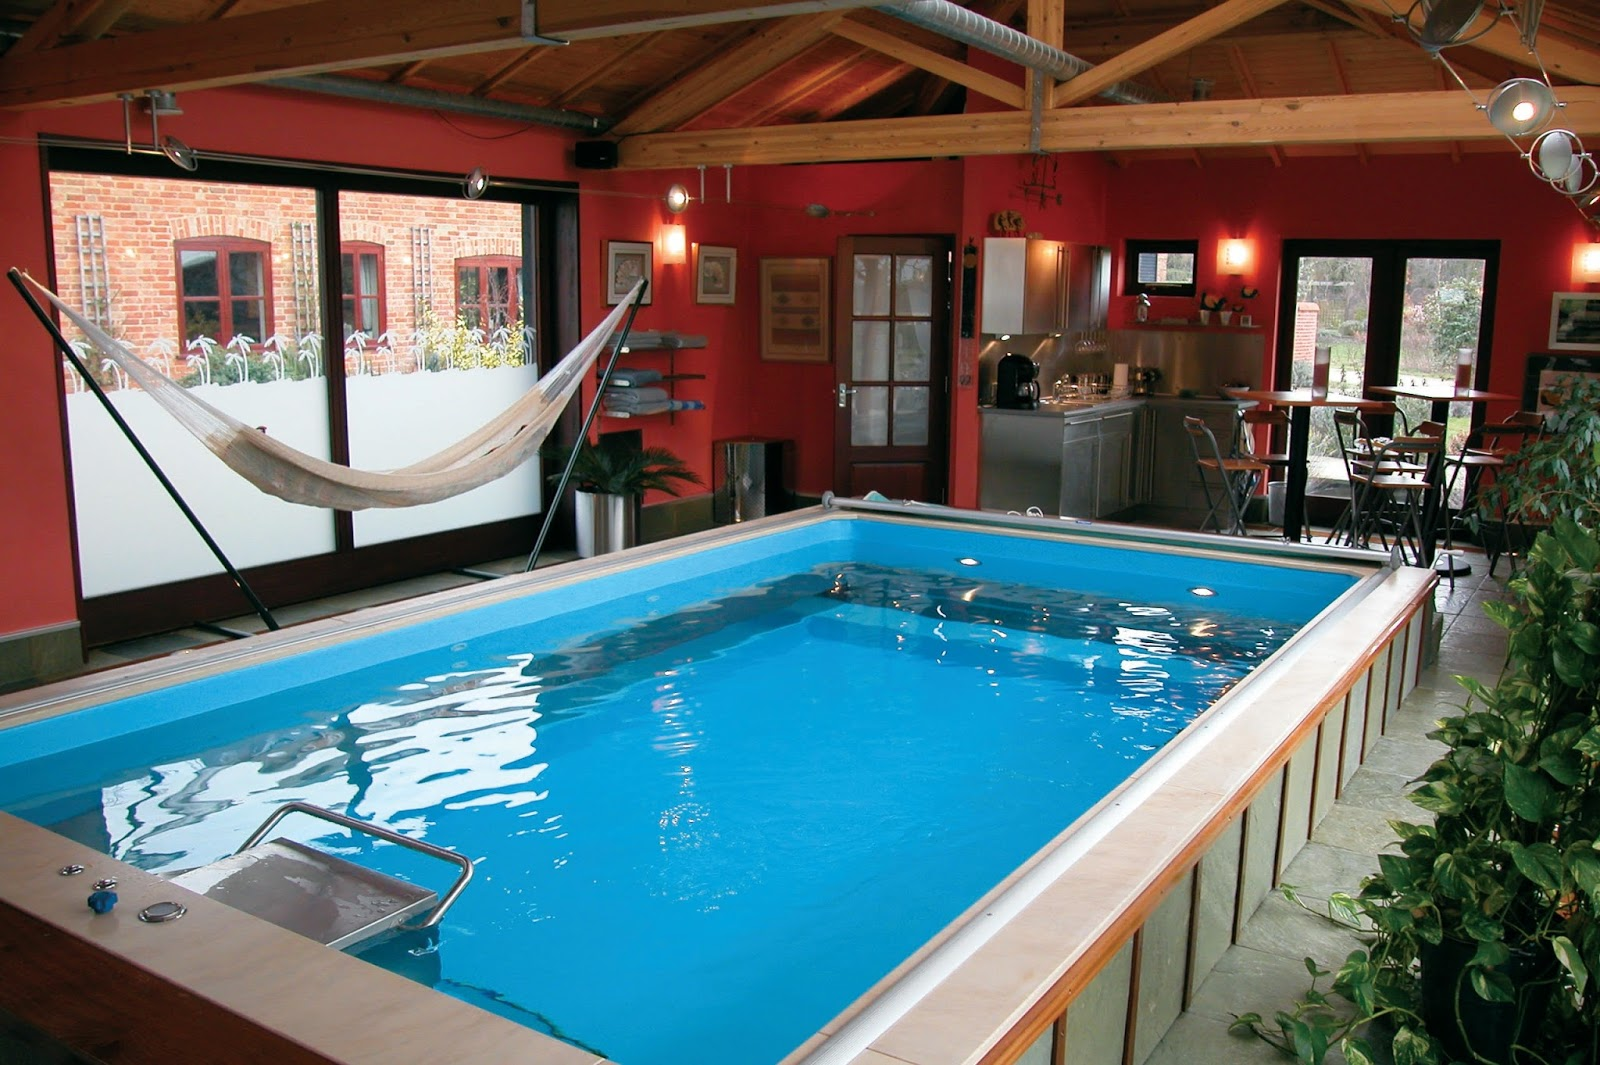 Pool with current to swim against - Man Cave With Hammock Kitchenette And Partially Inground Endless Pools Swimming Machine